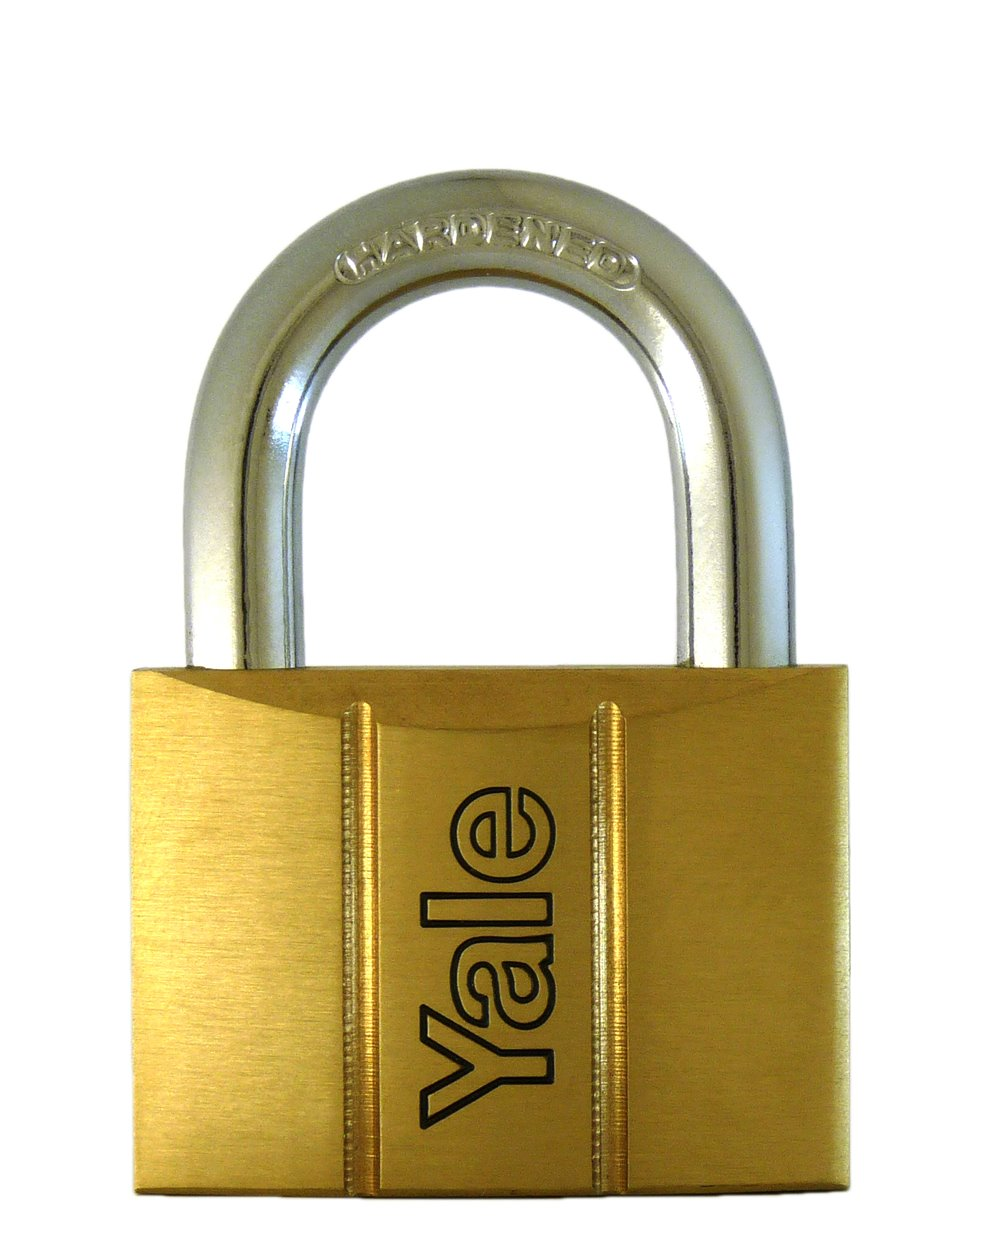 Y140/60 - Yale 140 Series Brass Padlock 60mm